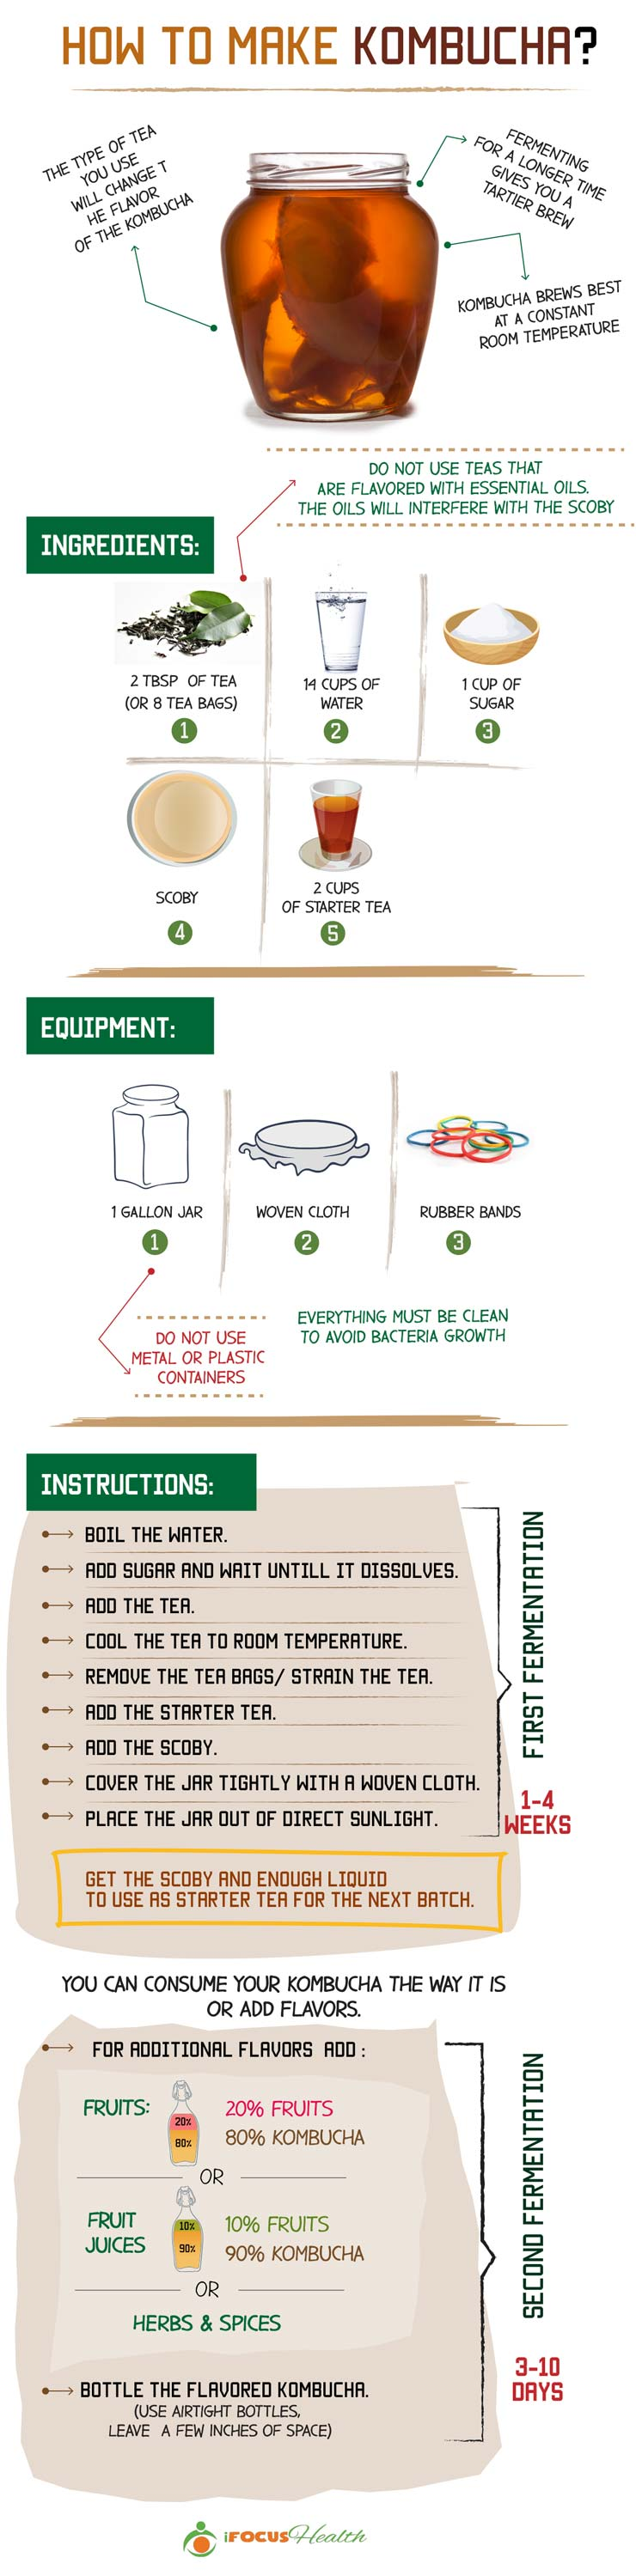 how to make kombucha recipe infographic